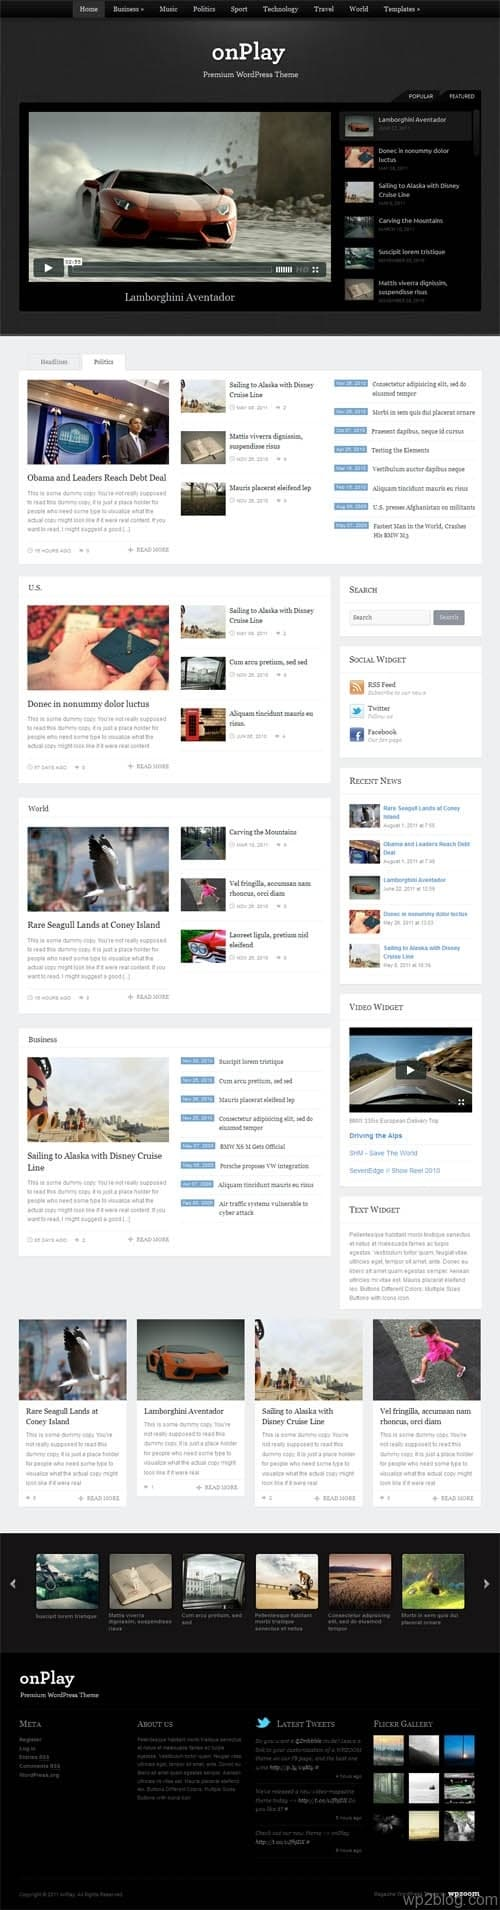 onPlay Magazine WordPress Theme